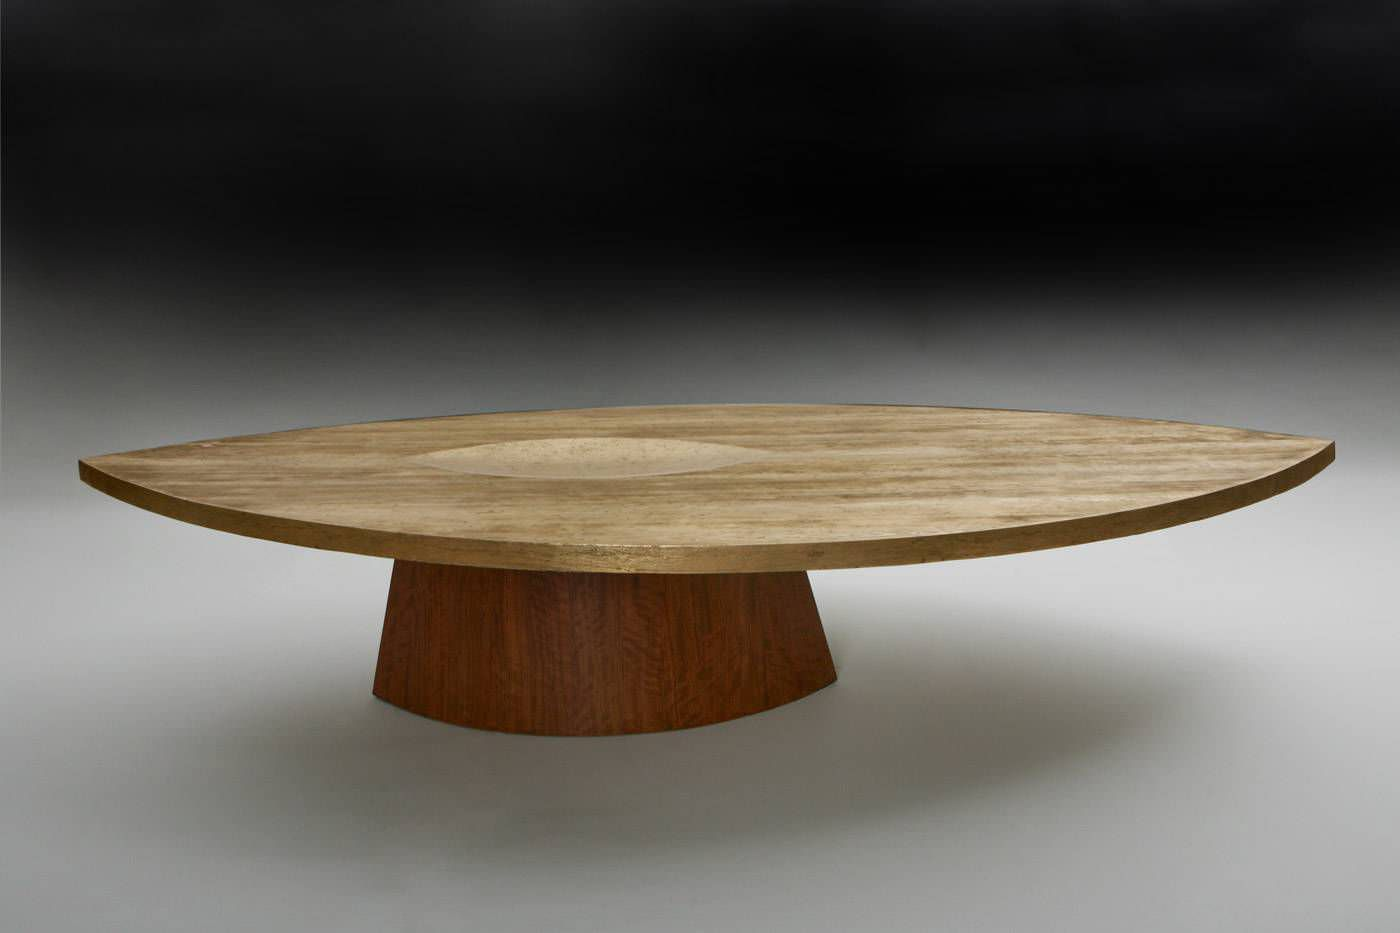 Table Basse Ronde En Bois Massif 3 Idees De Decoration